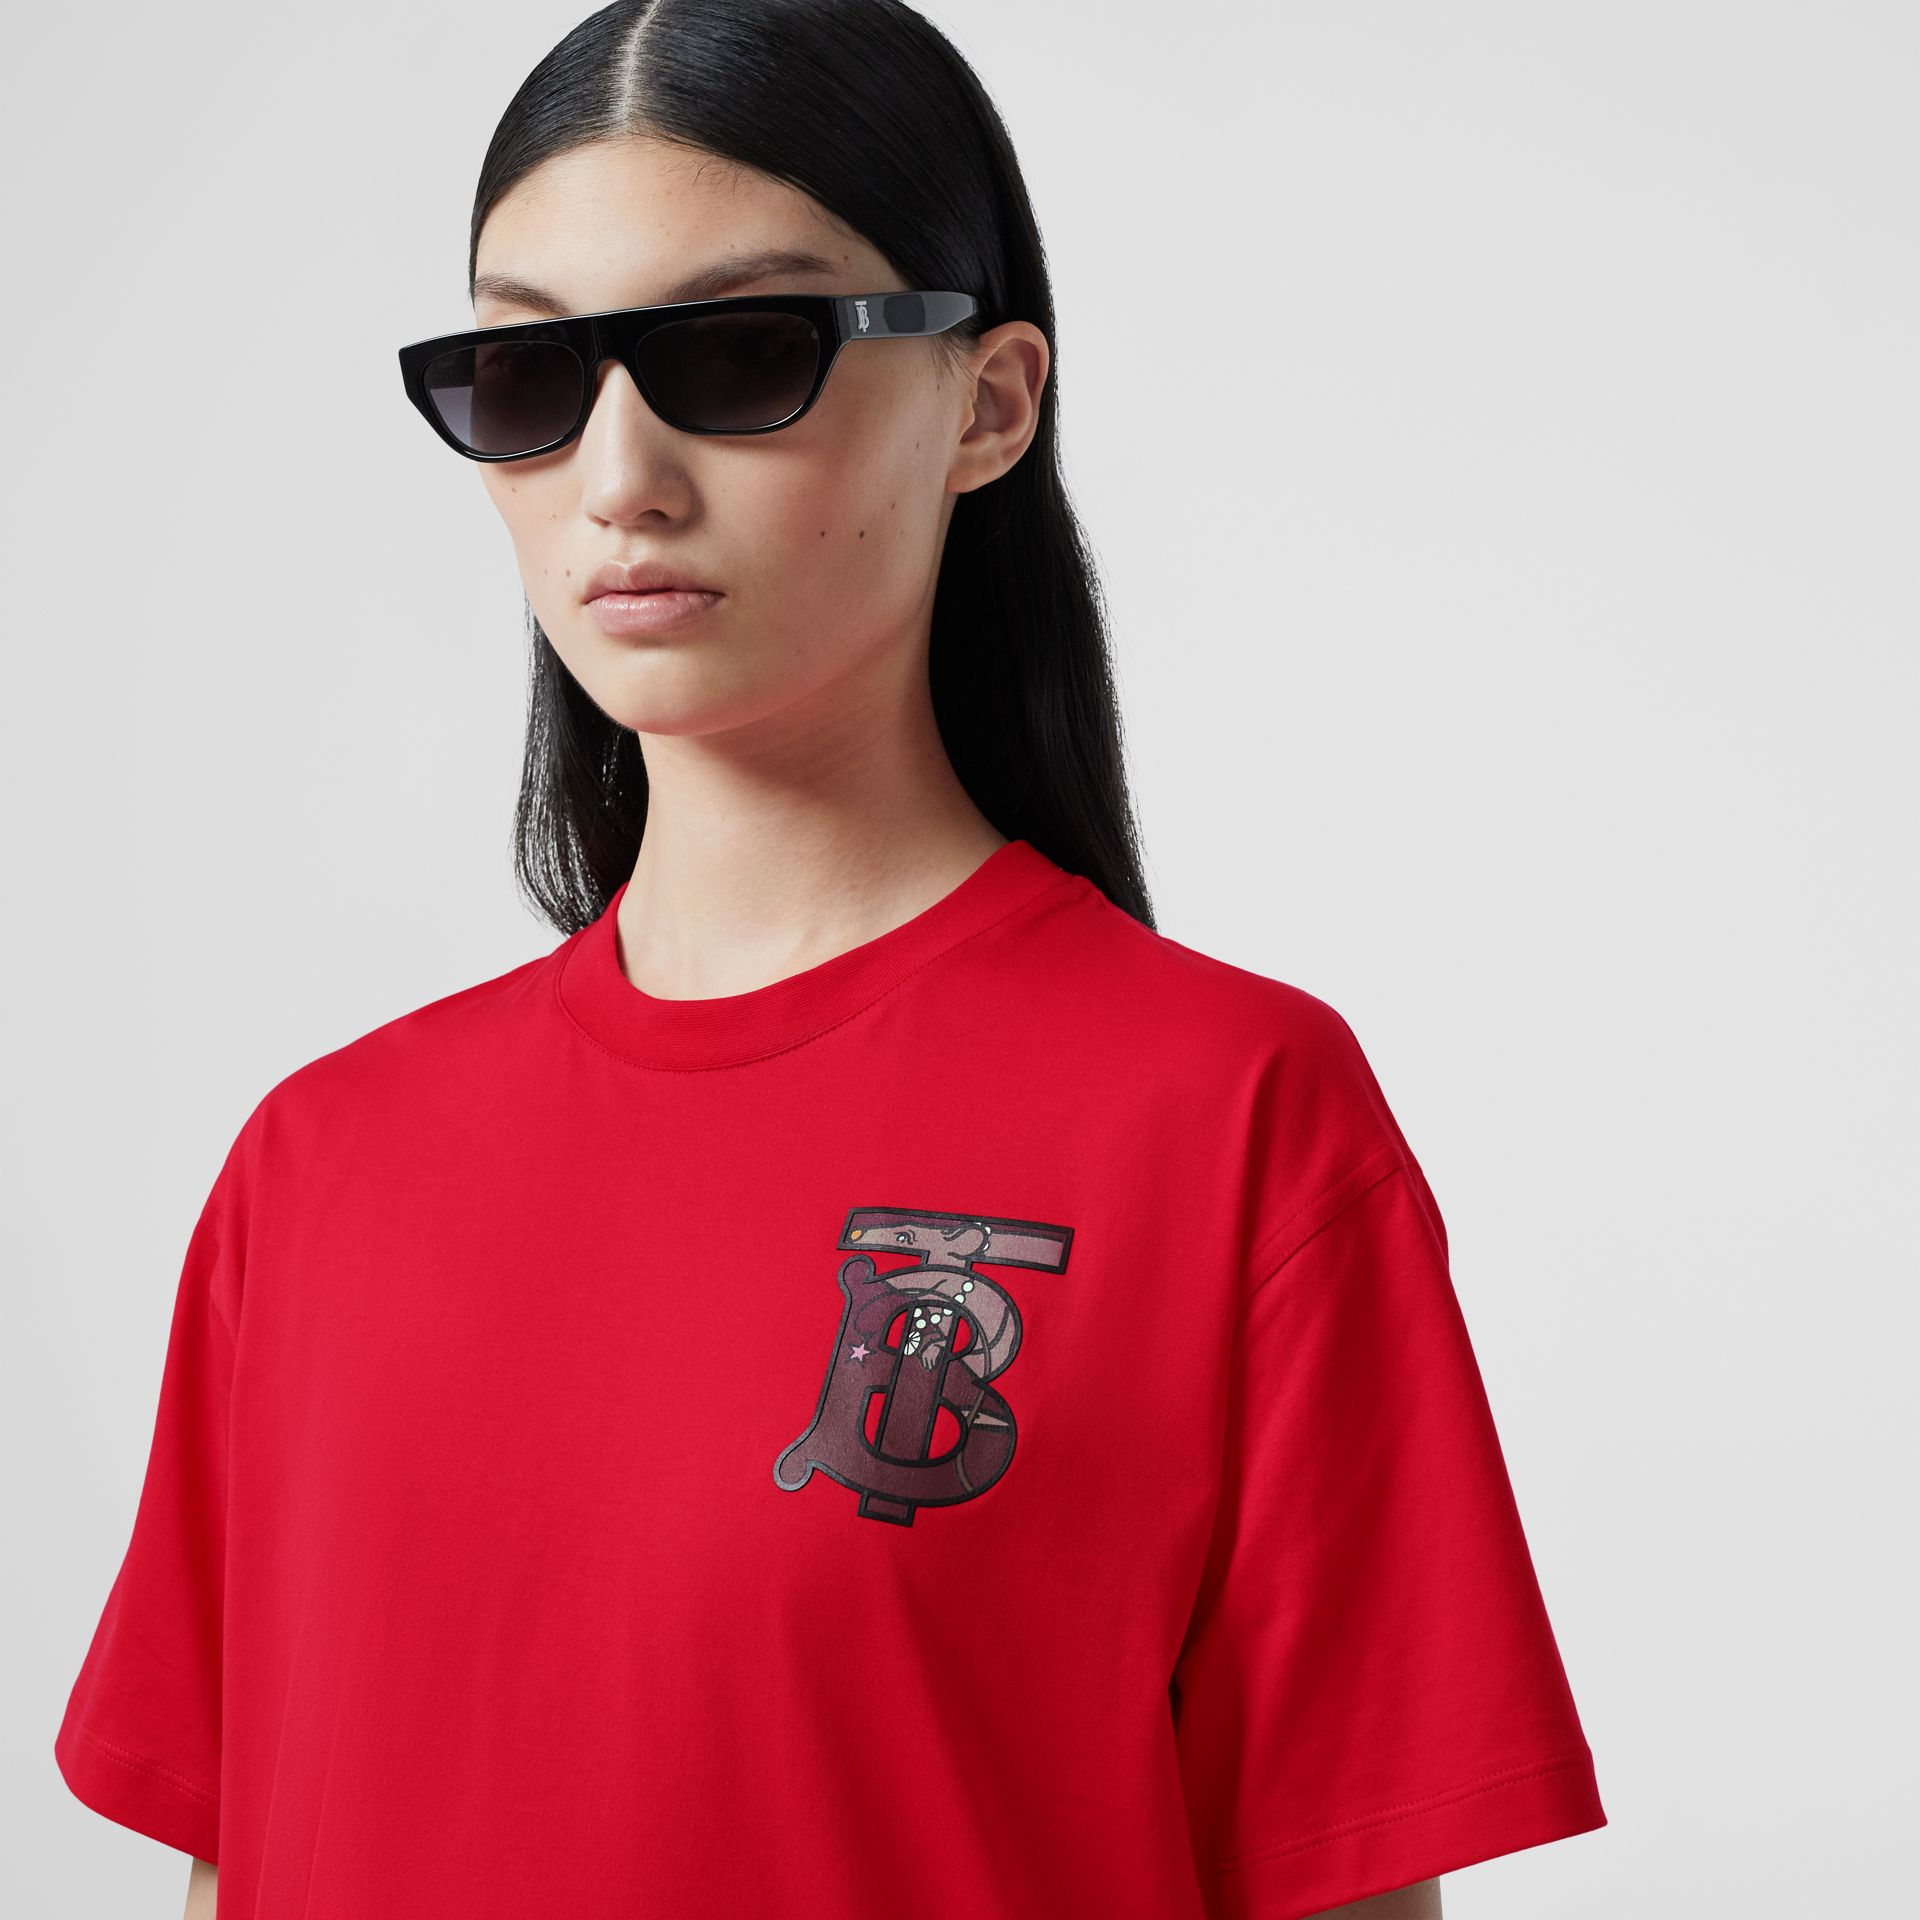 Monogram Motif Cotton Oversized T-shirt in Bright Red - Women | Burberry - gallery image 1